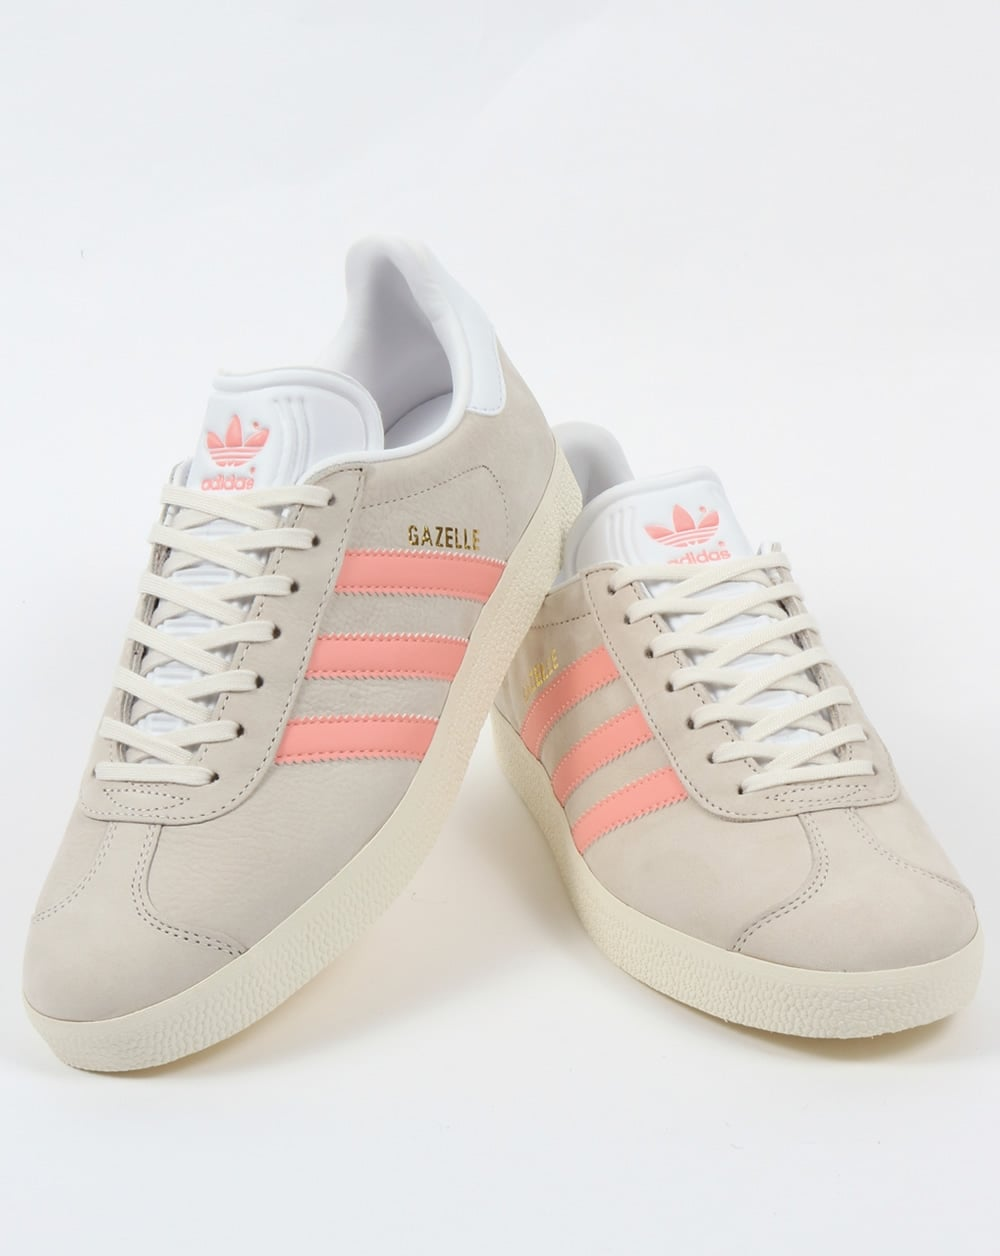 Adidas Gazelle Chalk White